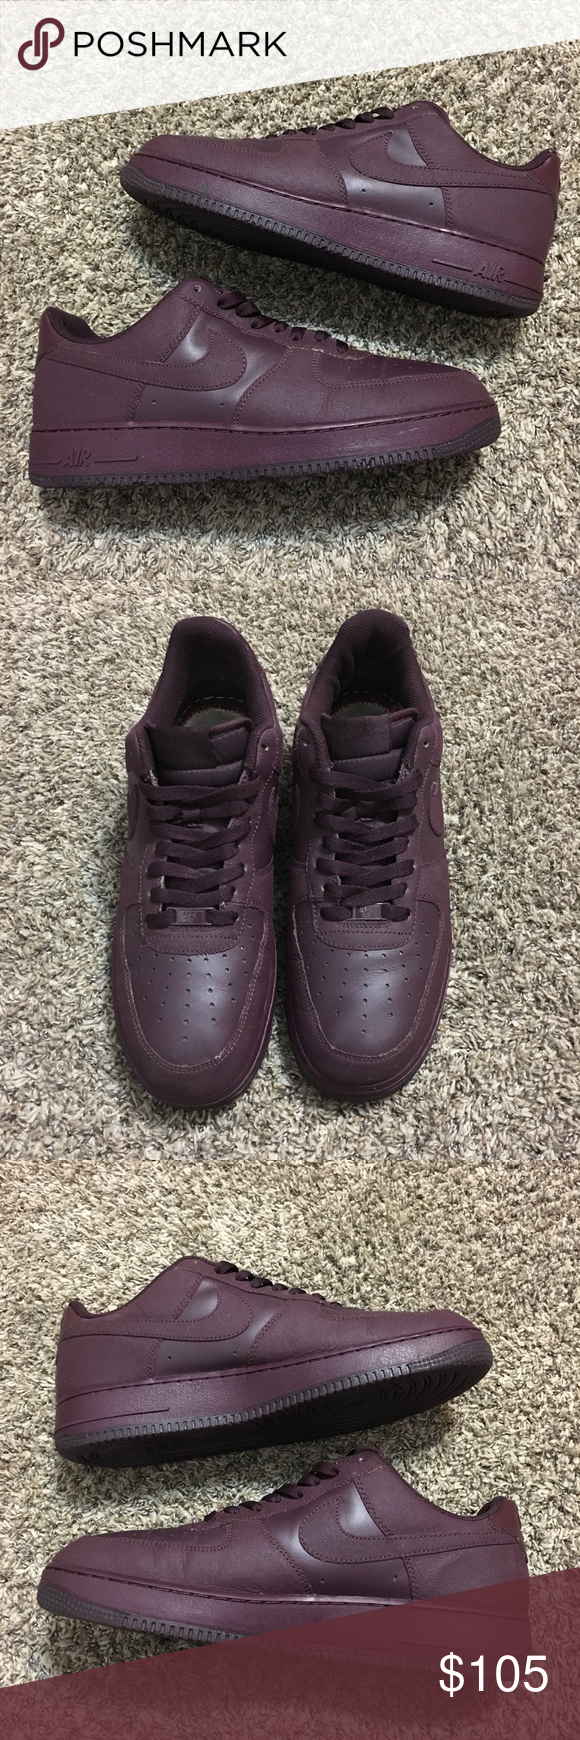 2b9c64c5928d7e Nike Air Force 1 Tec Tuff Deep Burgundy Sneakers Nike Air Force 1 Low Tec  Tuff Deep Burgundy 2011 Basketball Sneakers Size 11.5 Good condition but  has some ...